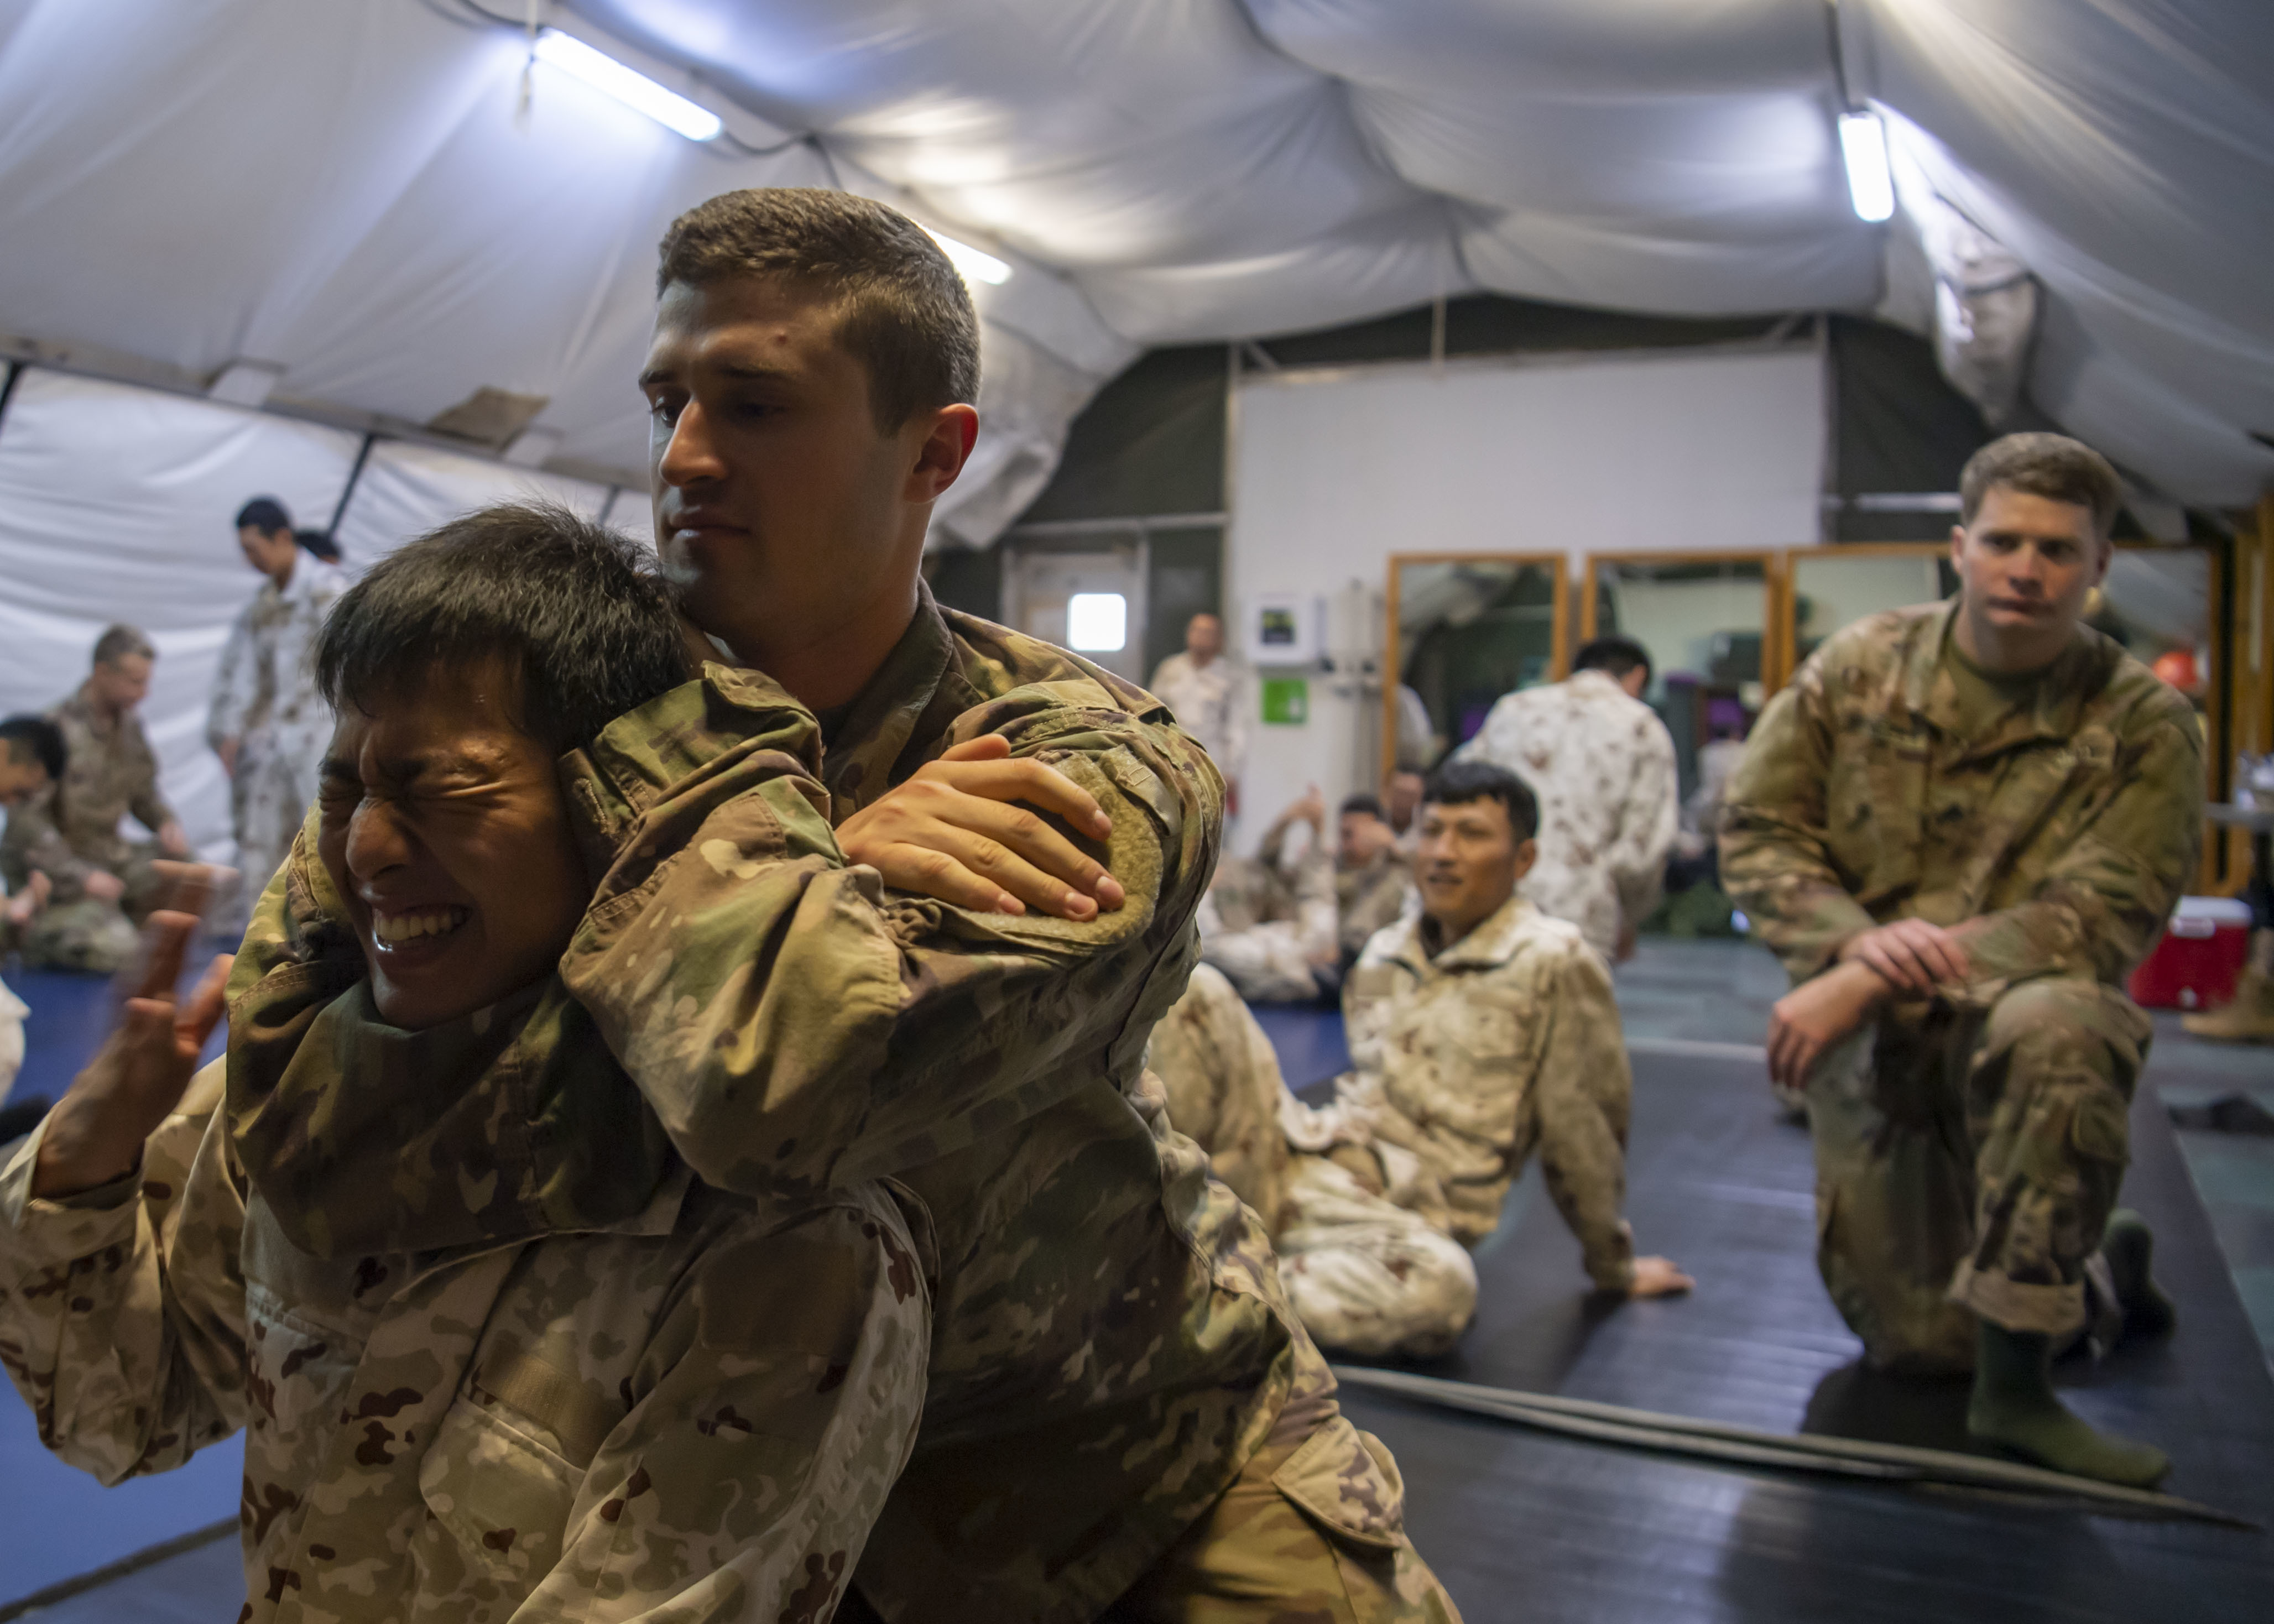 U.S. Army 1st Lt. Joseph Presti, platoon leader 101st Division, 1st Battalion, 26th Infantry Regiment, Task Force Warrior, assigned to Combined Joint Task Force-Horn of Africa (CJTF-HOA), practices a rear-naked choke with a Japanese Ground Self-Defense Force (JGSDF) soldier during a combatives exchange at Camp Lemonnier, Djibouti, July 1, 2019. The purpose of the joint exchange was to share Japanese combative techniques and forge relationships between CJTF-HOA and JGSDF. (U.S. Air Force photo by Staff Sgt. J.D. Strong II)